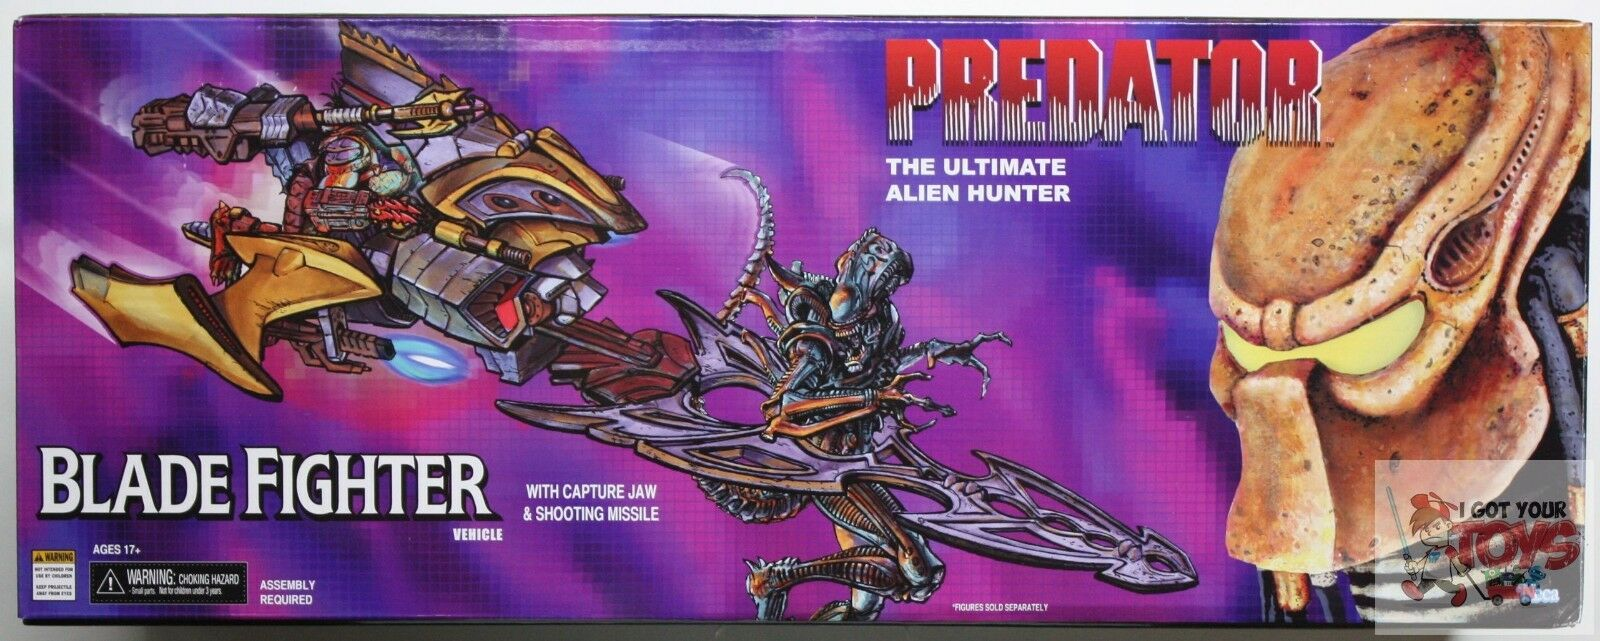 NECA BLADE FIGHTER THE ULTIMATE ALIEN HUNTER Kenner PROTATOR 2015 VEHICLE